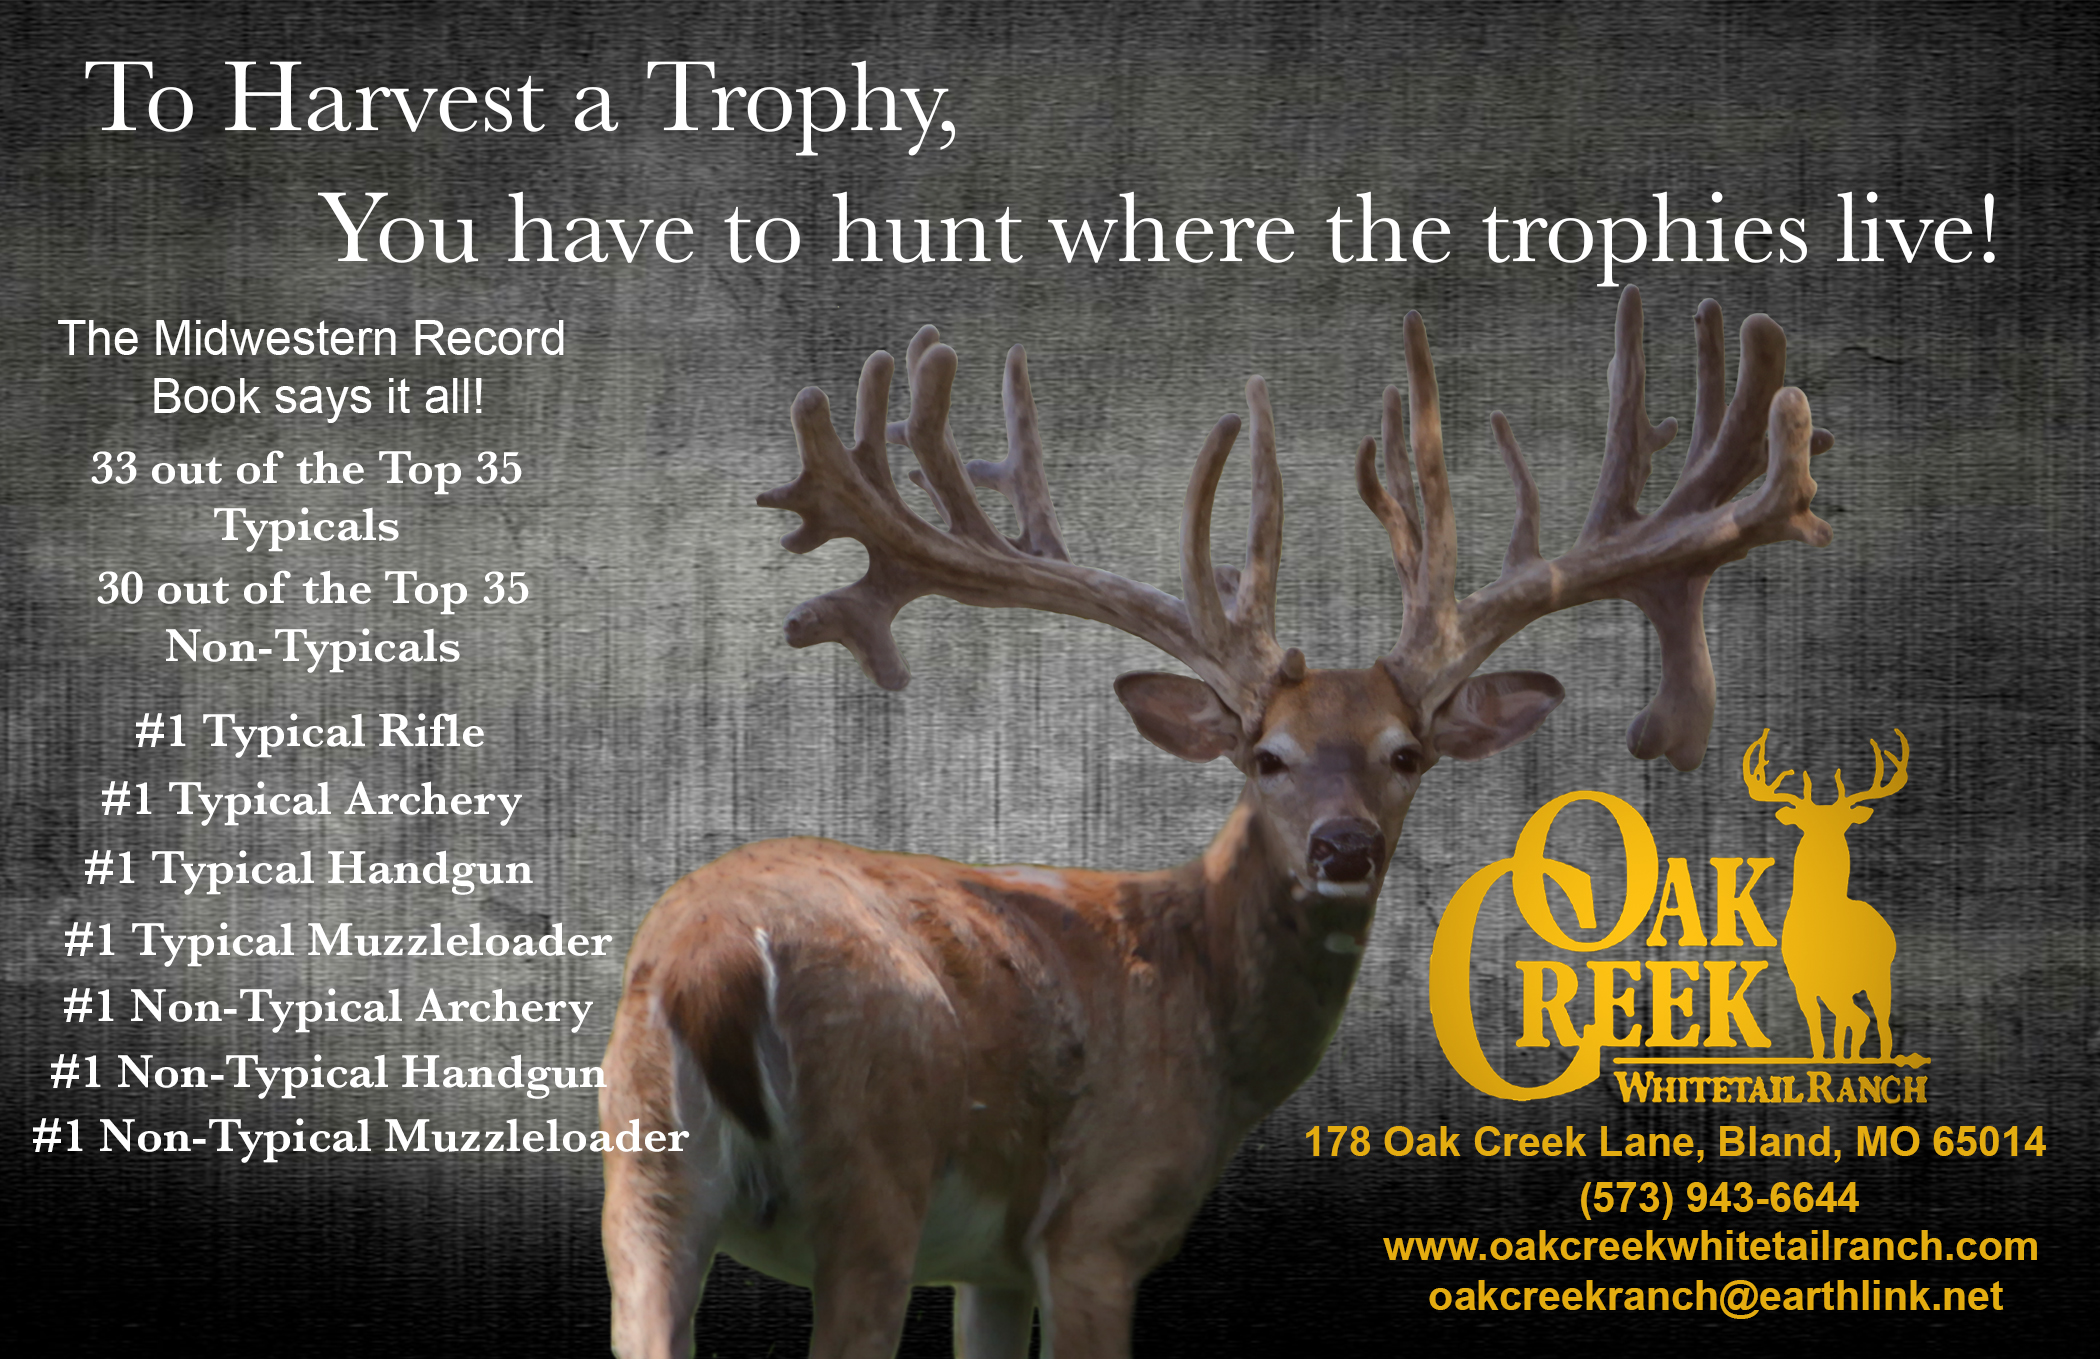 Nations Premier Whitetail Hunting Preserve